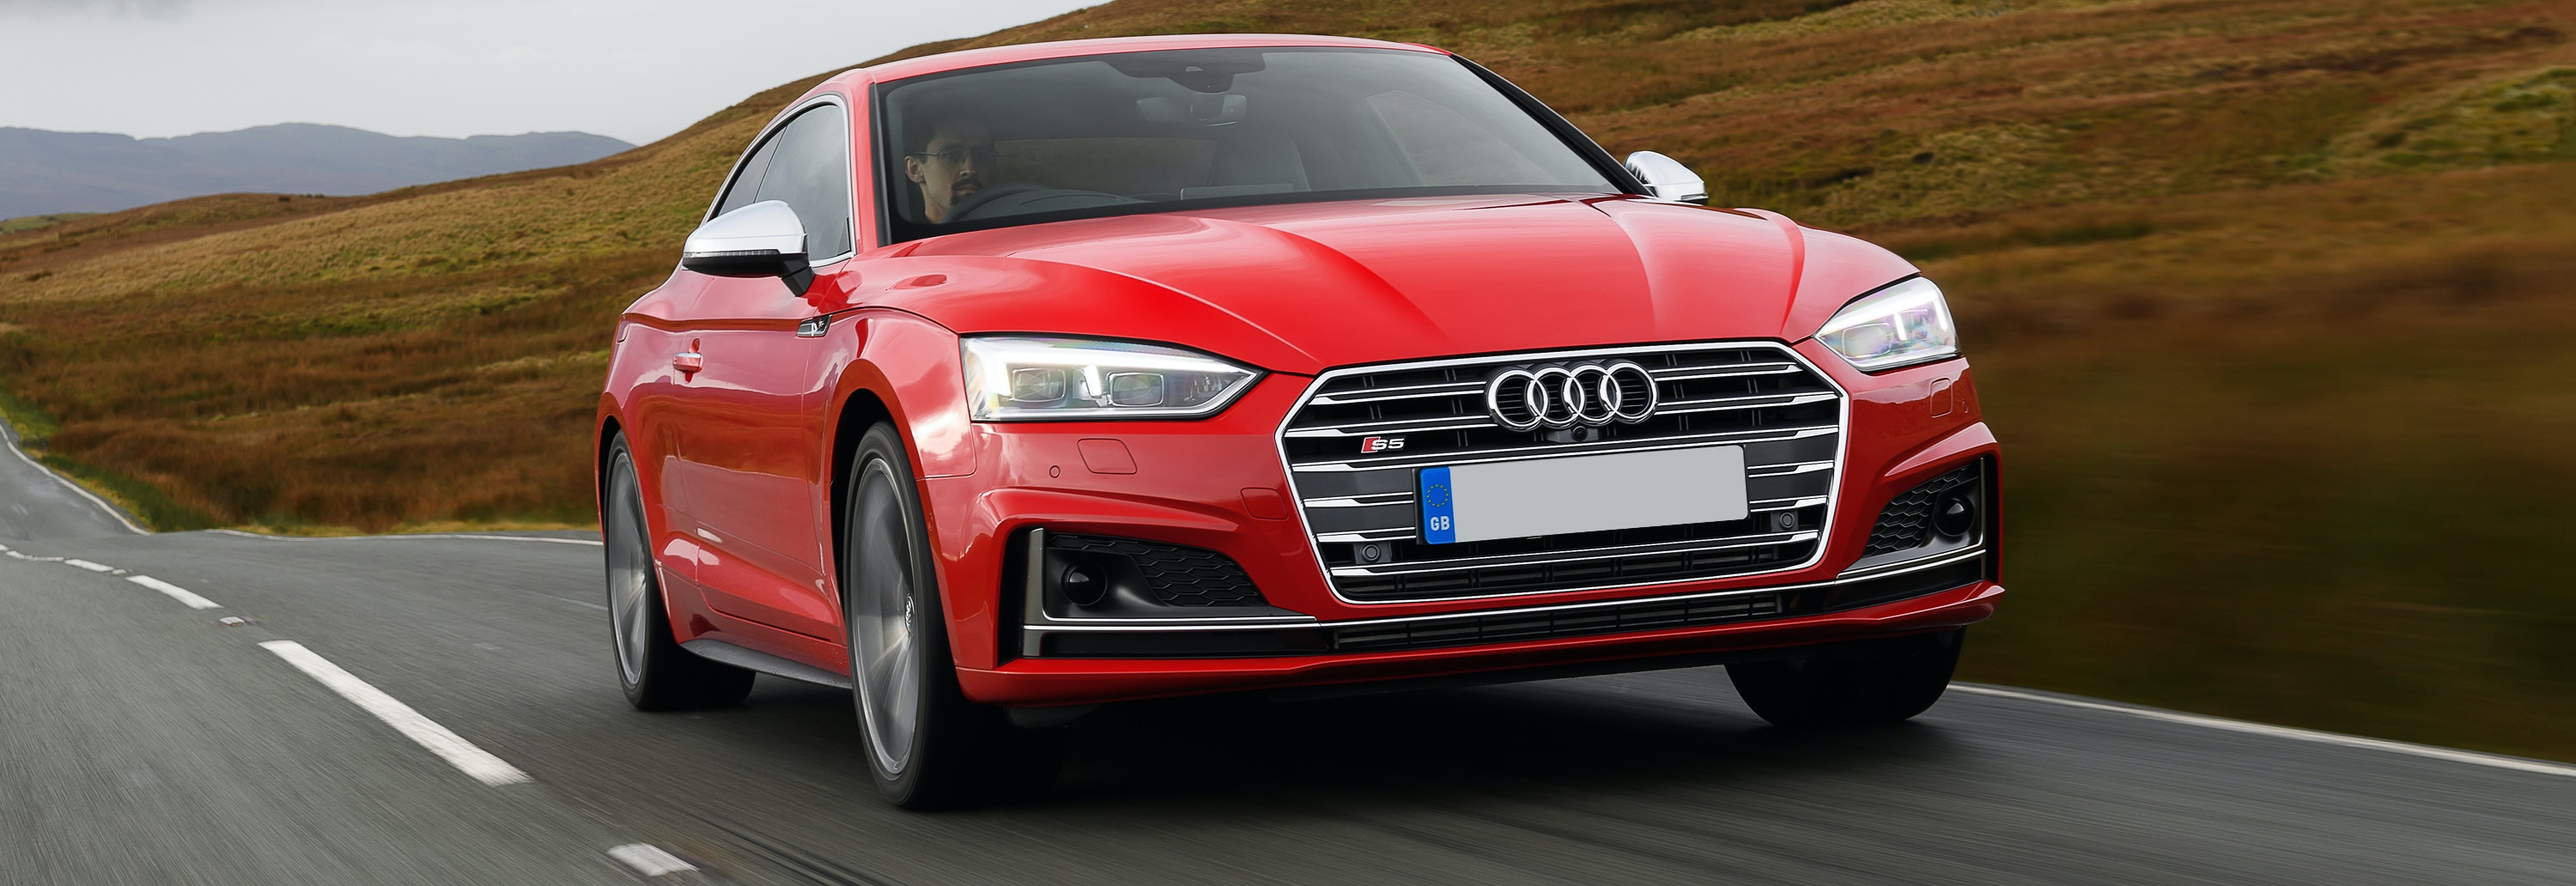 2018 Audi S5 Red Driving Front